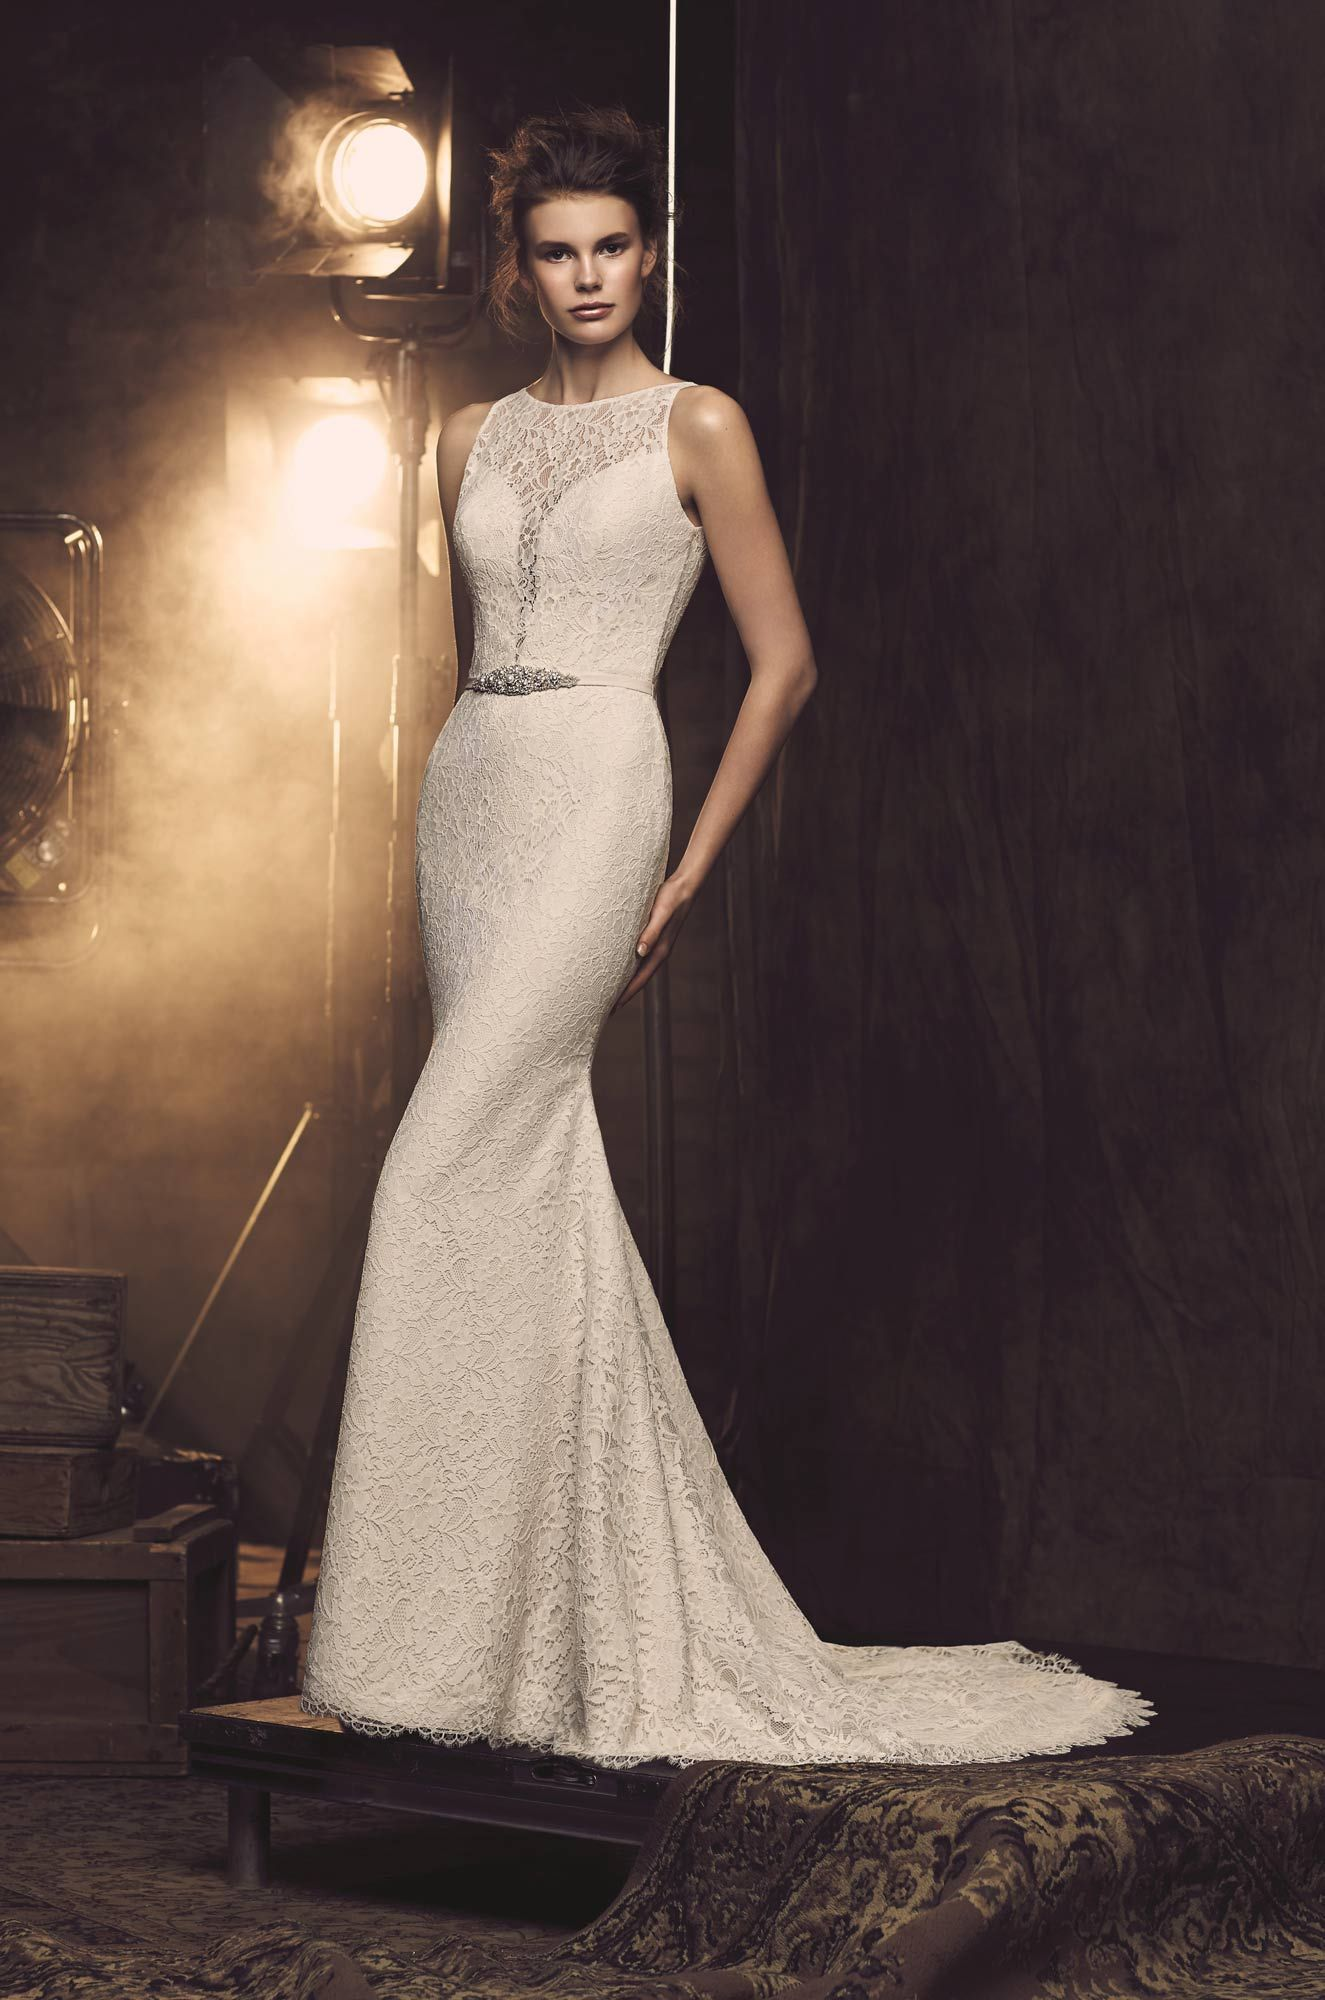 Chicago wedding dress shops  Bridal Shop Locator  Fall  Collection  Pinterest  Lace bodice